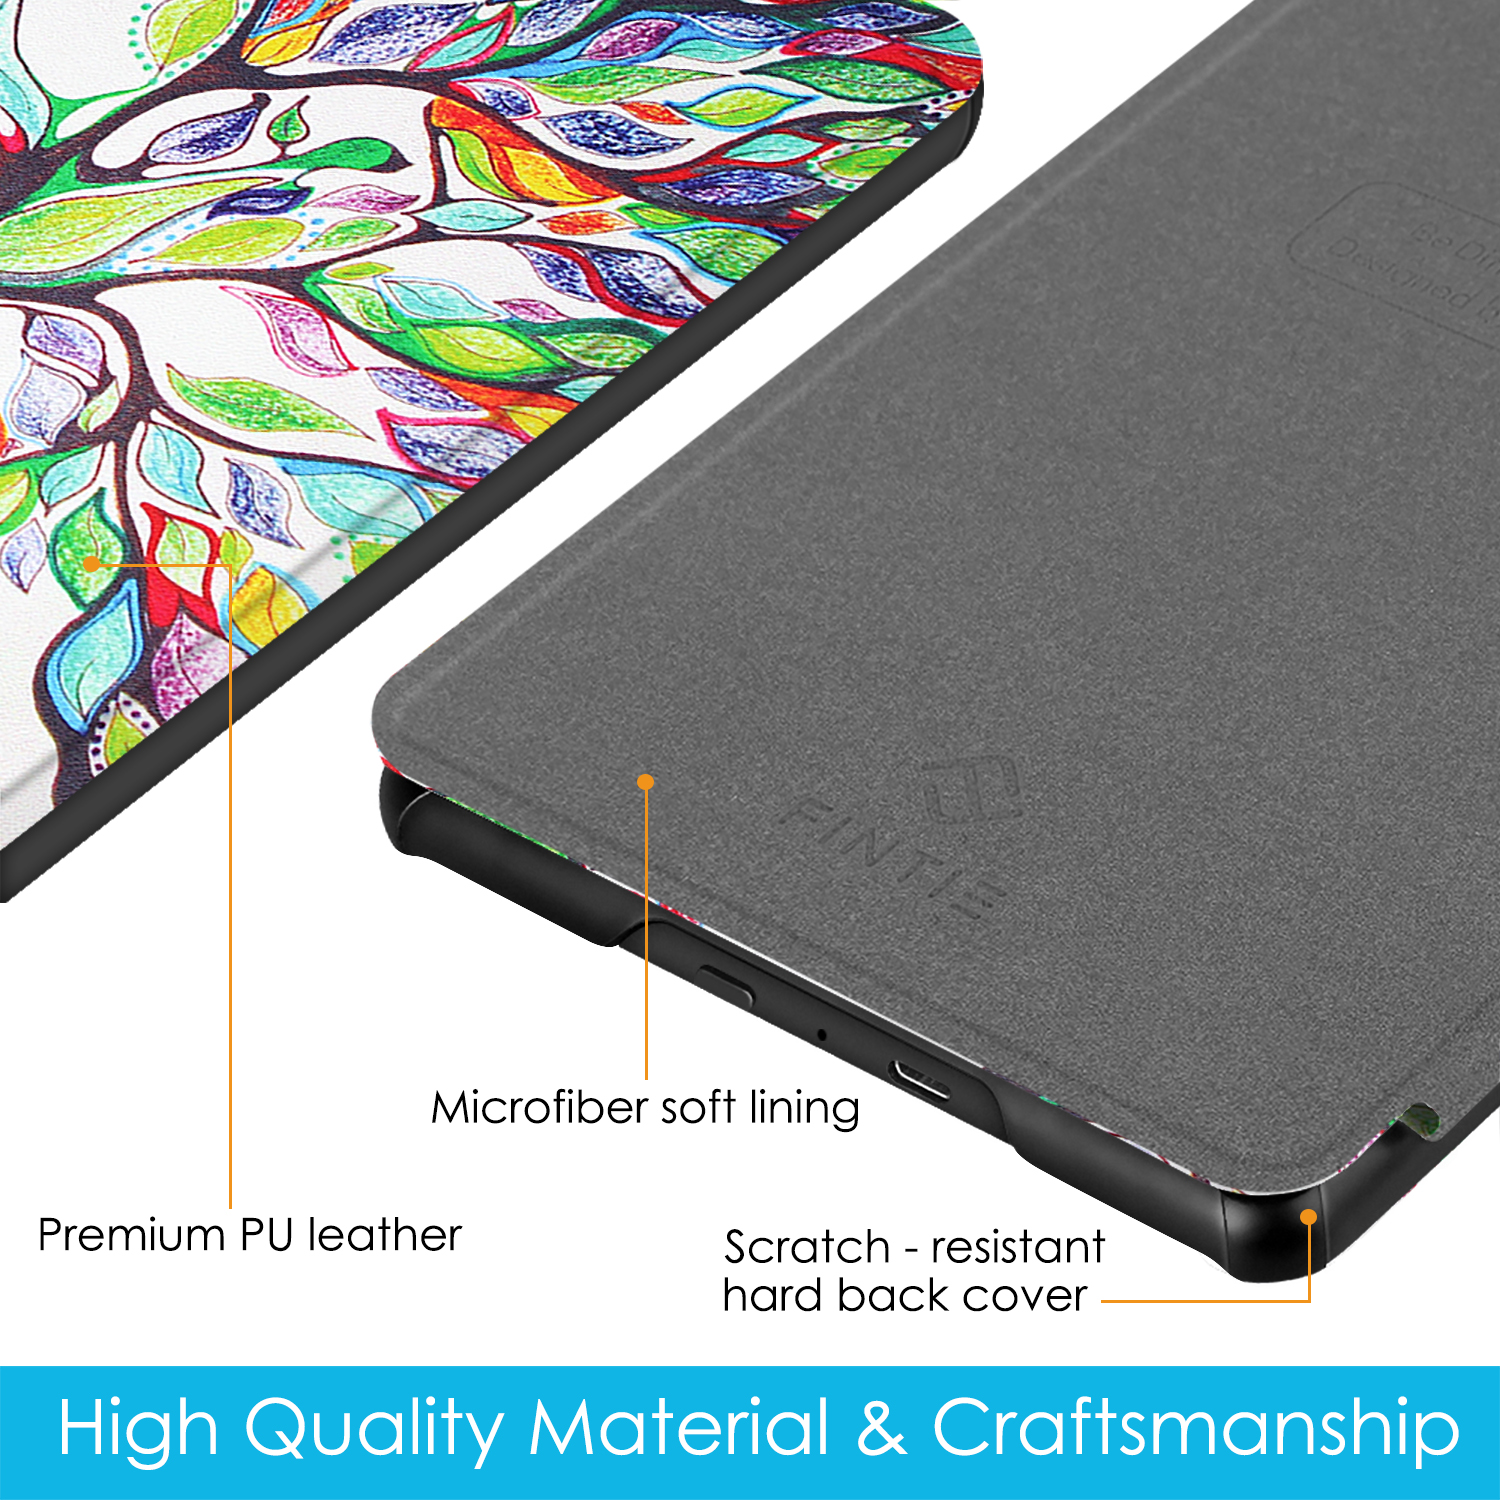 / Case for All-New Kindle 10th Gen 2019 Release -/UGOcase Slim Premium PU Leather Protective Stand Wallet Cover Case for New Kindle 2019 Orchid Will not fit Kindle Paperwhite or Kindle Oasis